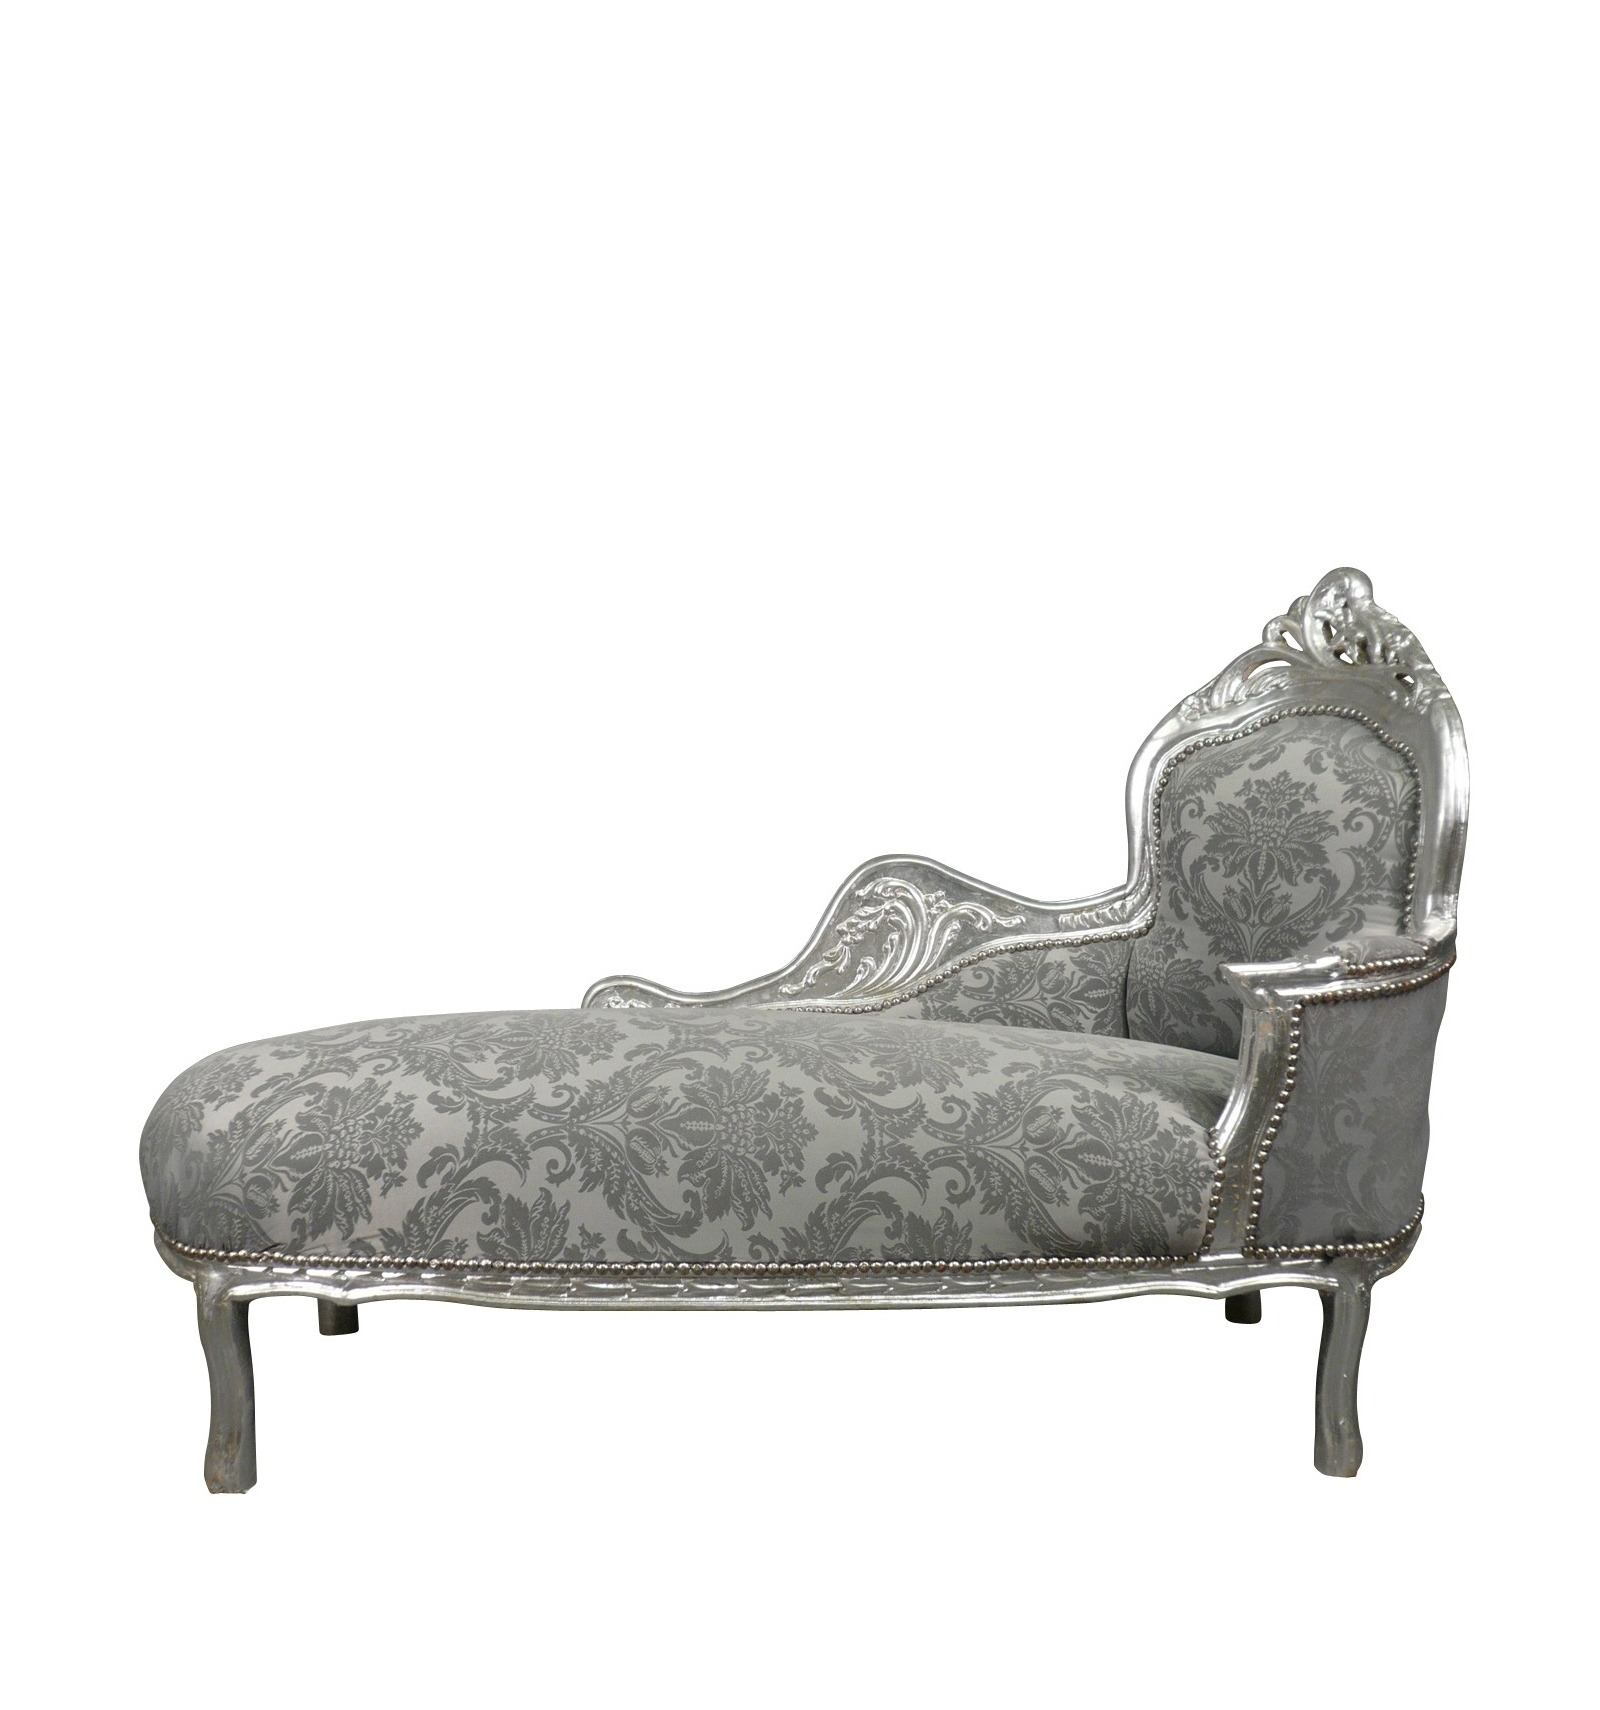 chaise baroque grey. Black Bedroom Furniture Sets. Home Design Ideas